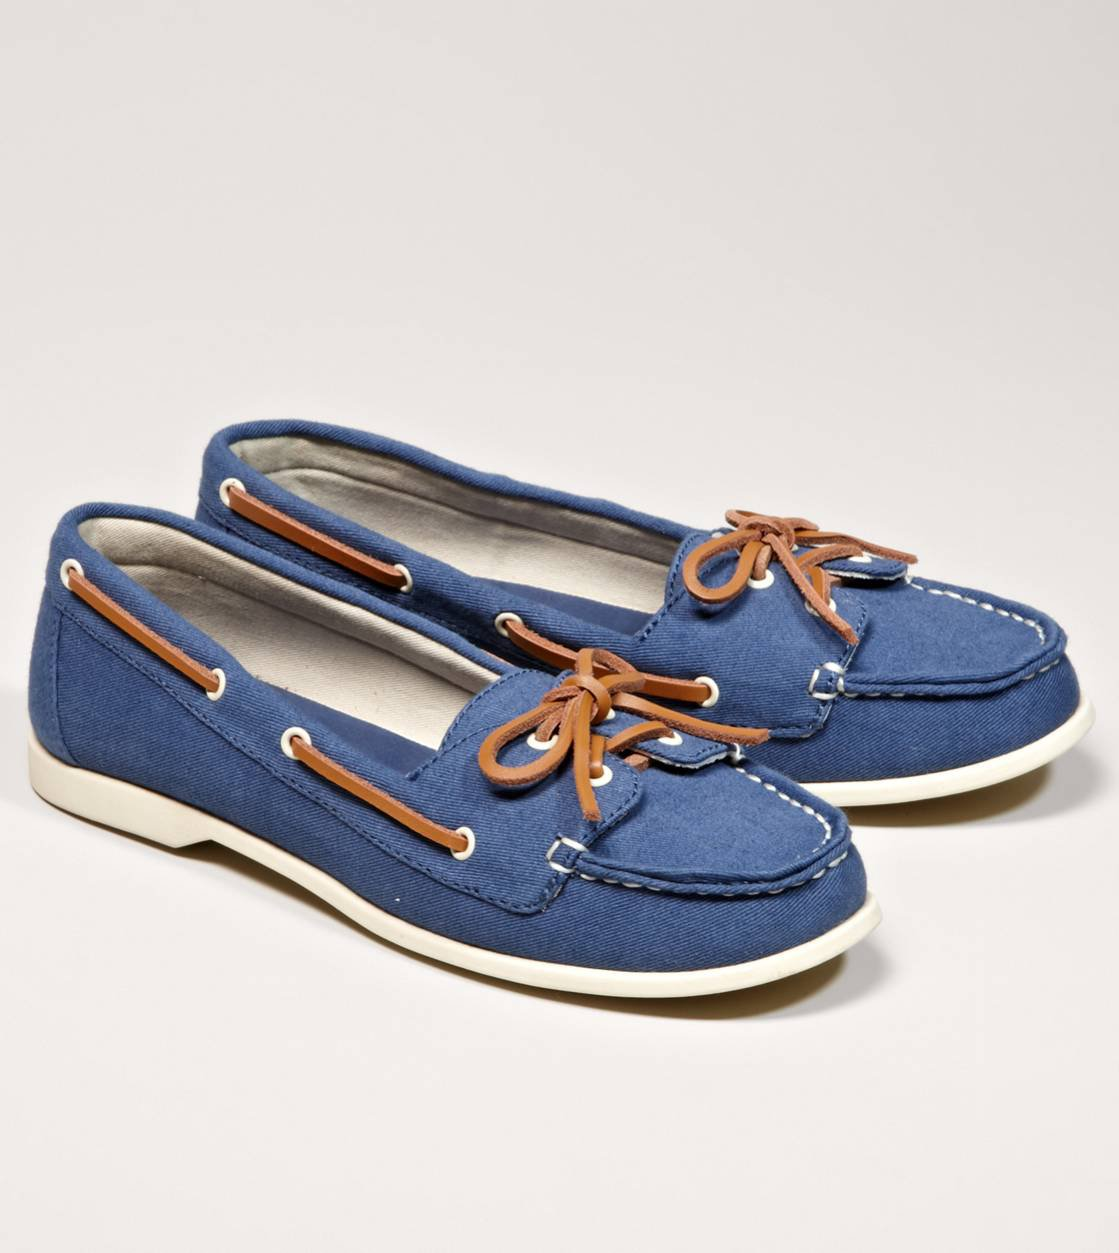 aeo canvas boat shoe american eagle from american eagle